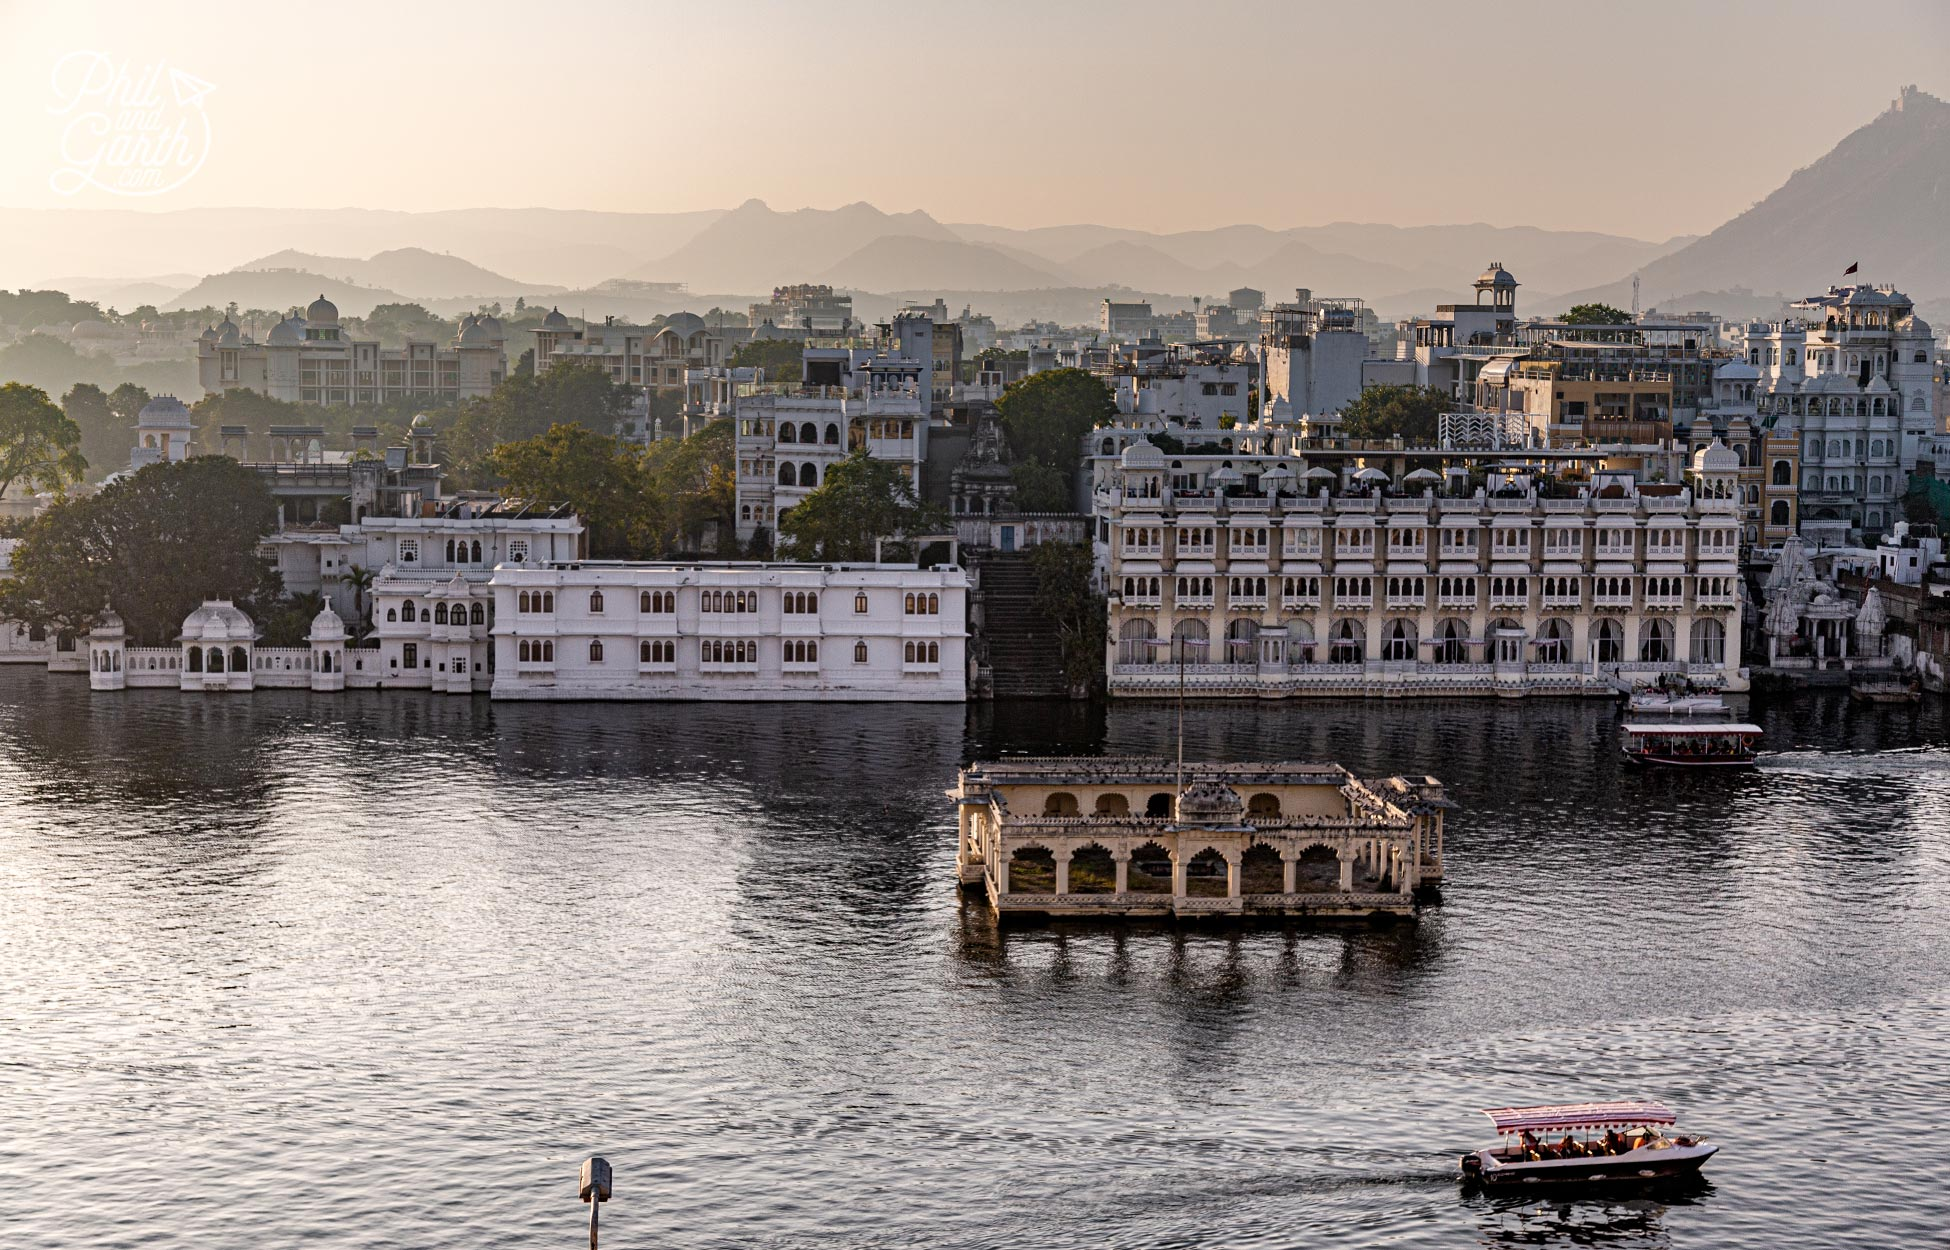 Udaipur was founded in 1559 by Maharana Udai Singh II. Some people call it the 'Venice of India'